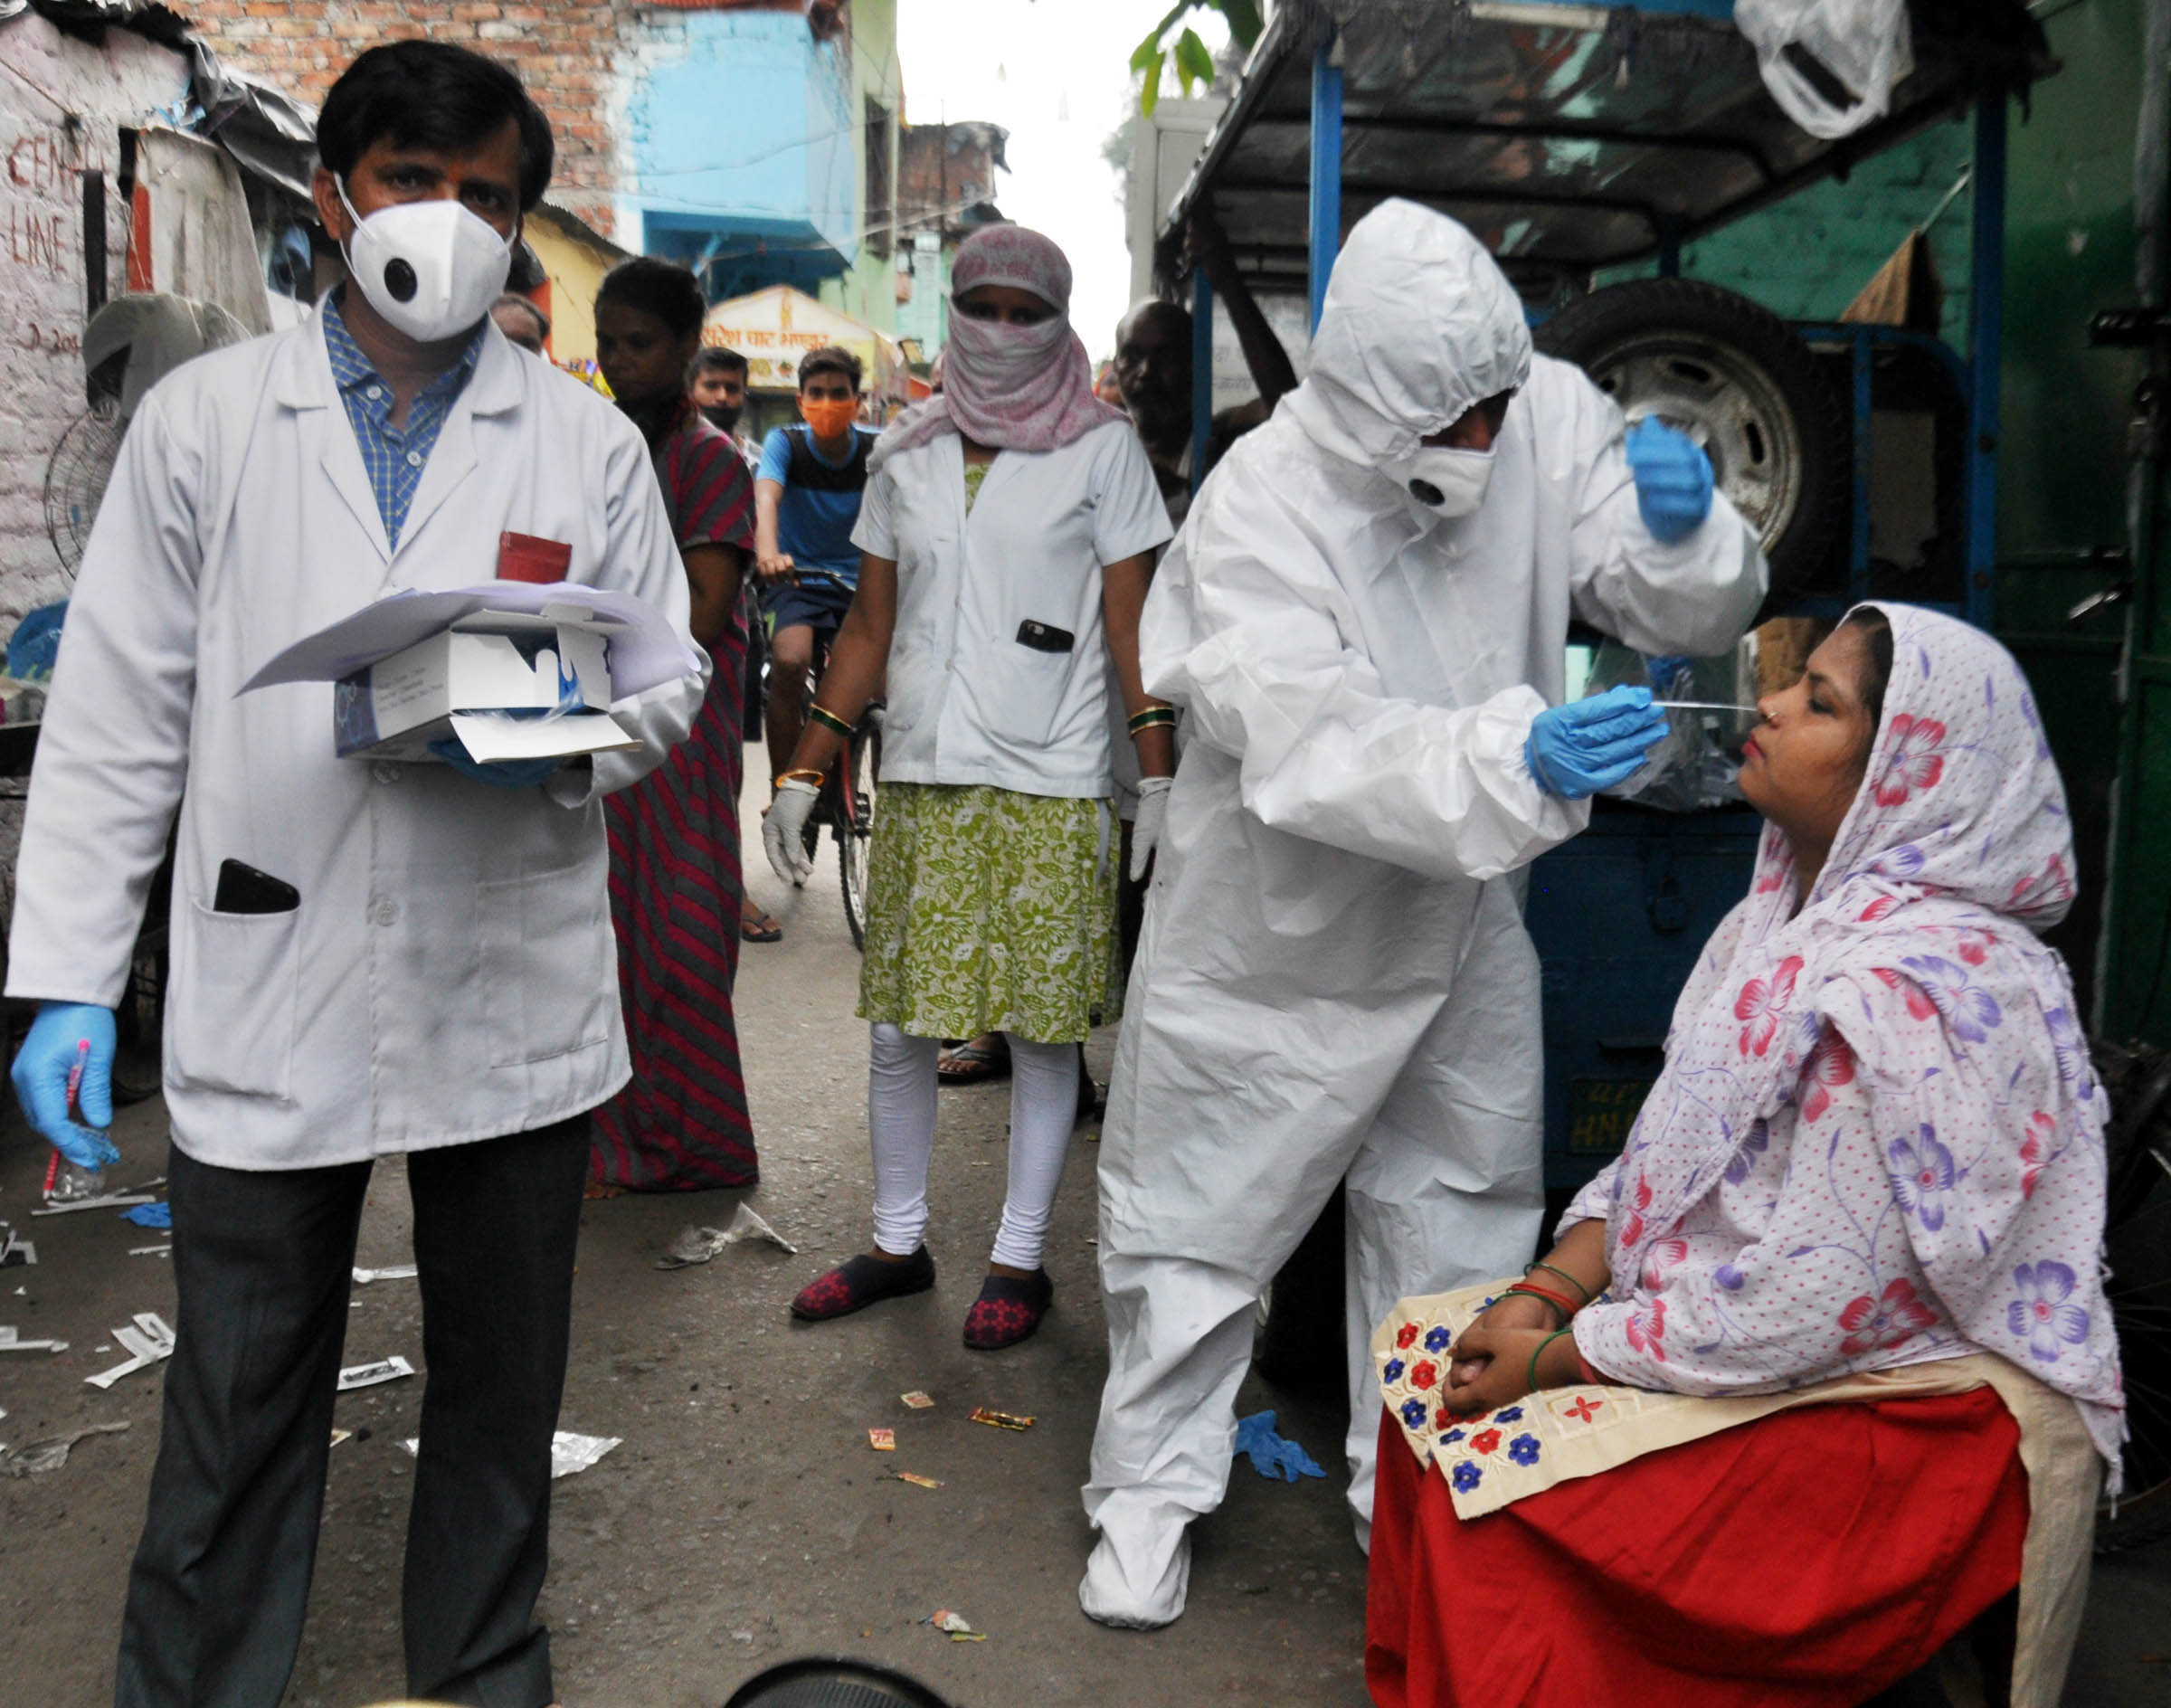 India reports over 60,000 Covid-19 cases in 24 hours, tally crosses 2.32 million